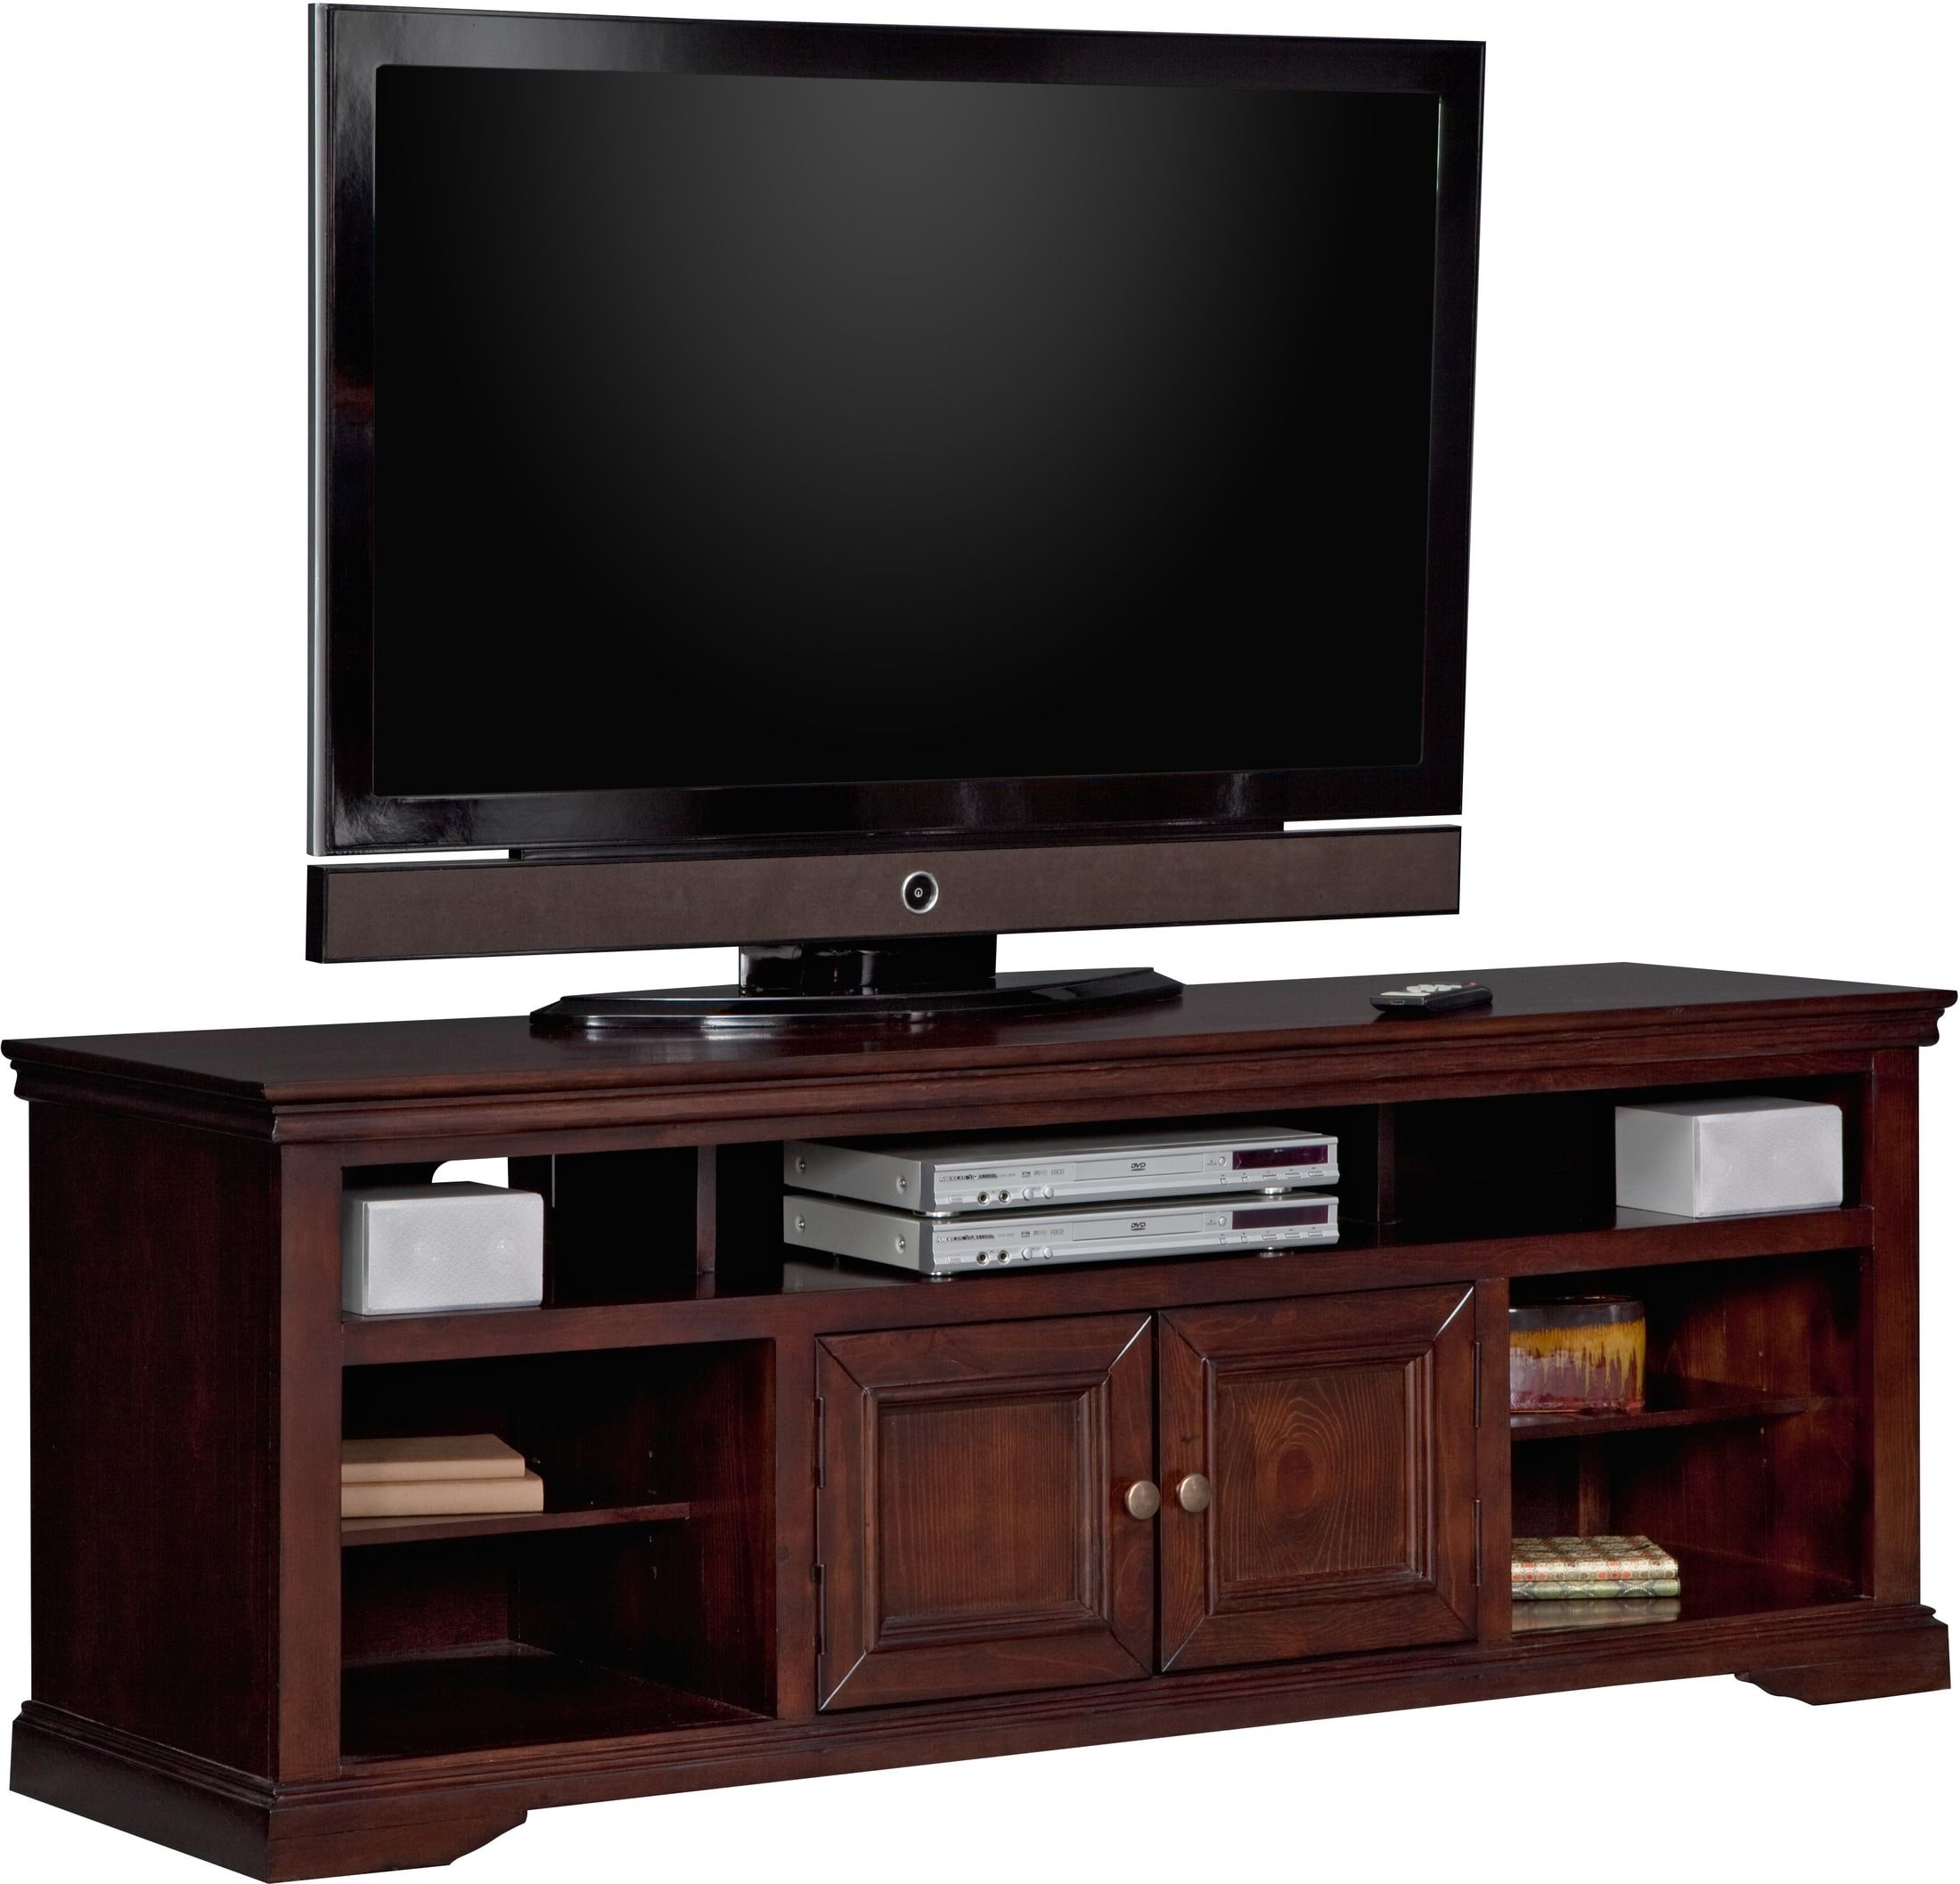 Jenson Tv Stand Value City Furniture And Mattresses